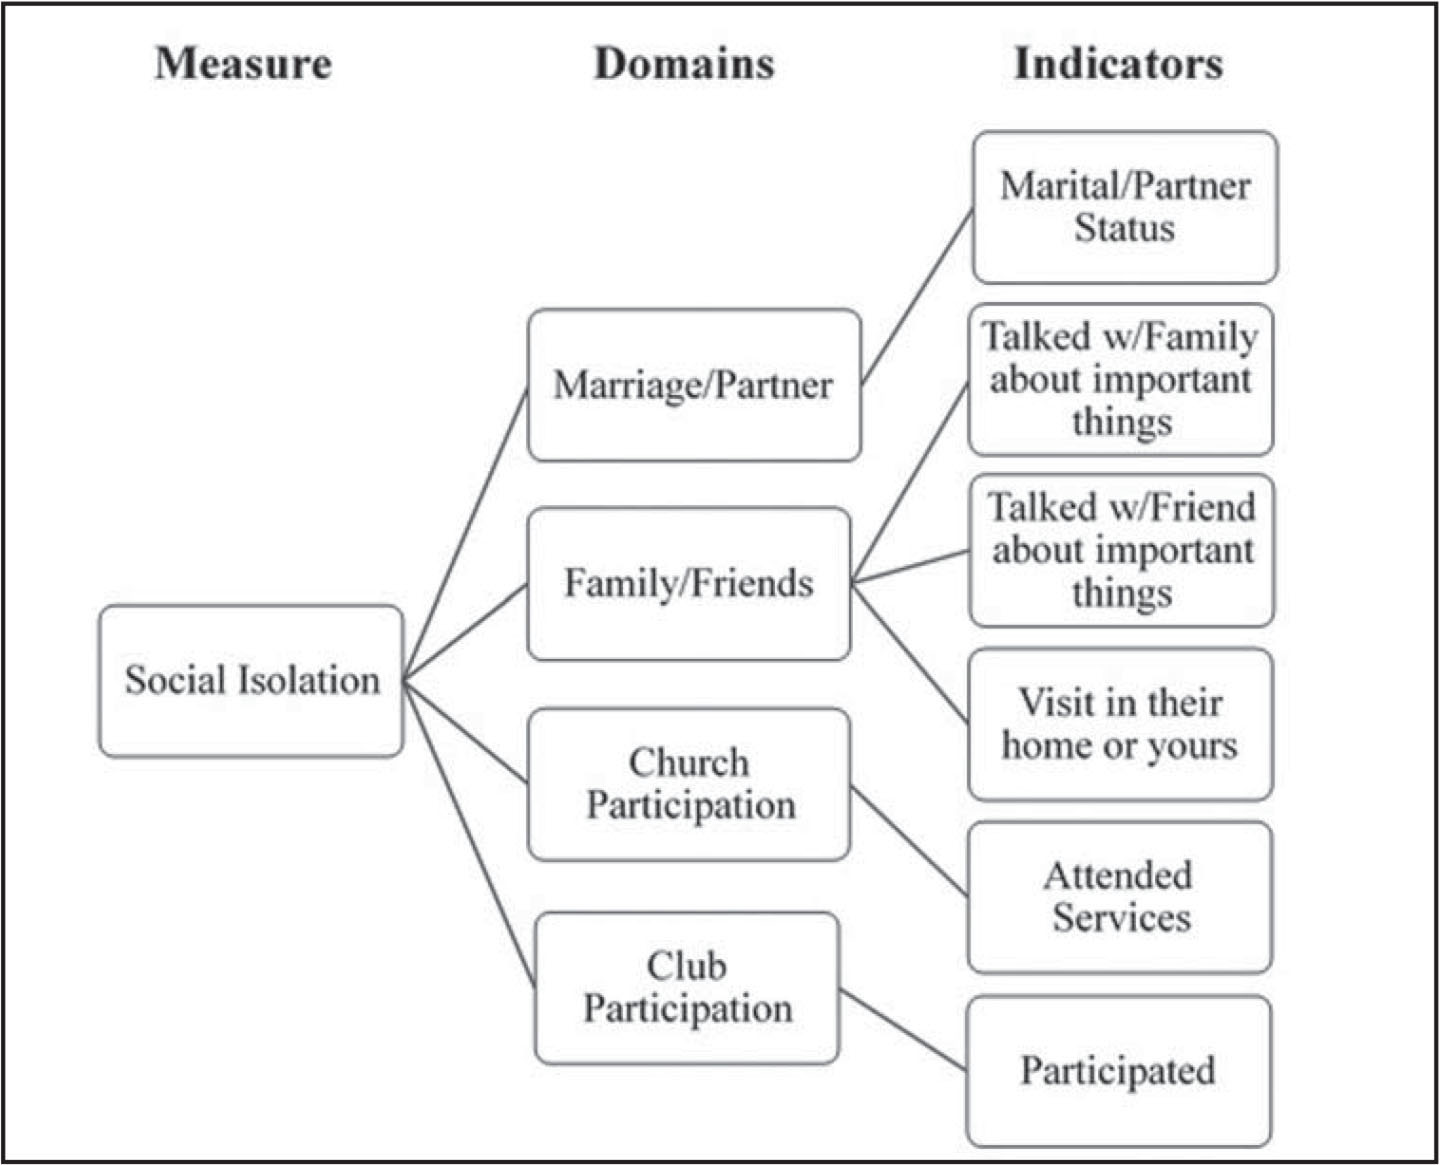 Conceptualization of the social isolation (theoretical construct), the Social Network Index network contact and integrating relationship domains (participation), and the indicators (items) in the National Health and Aging Trends Study interview.Adapted from Nicholson (2010).